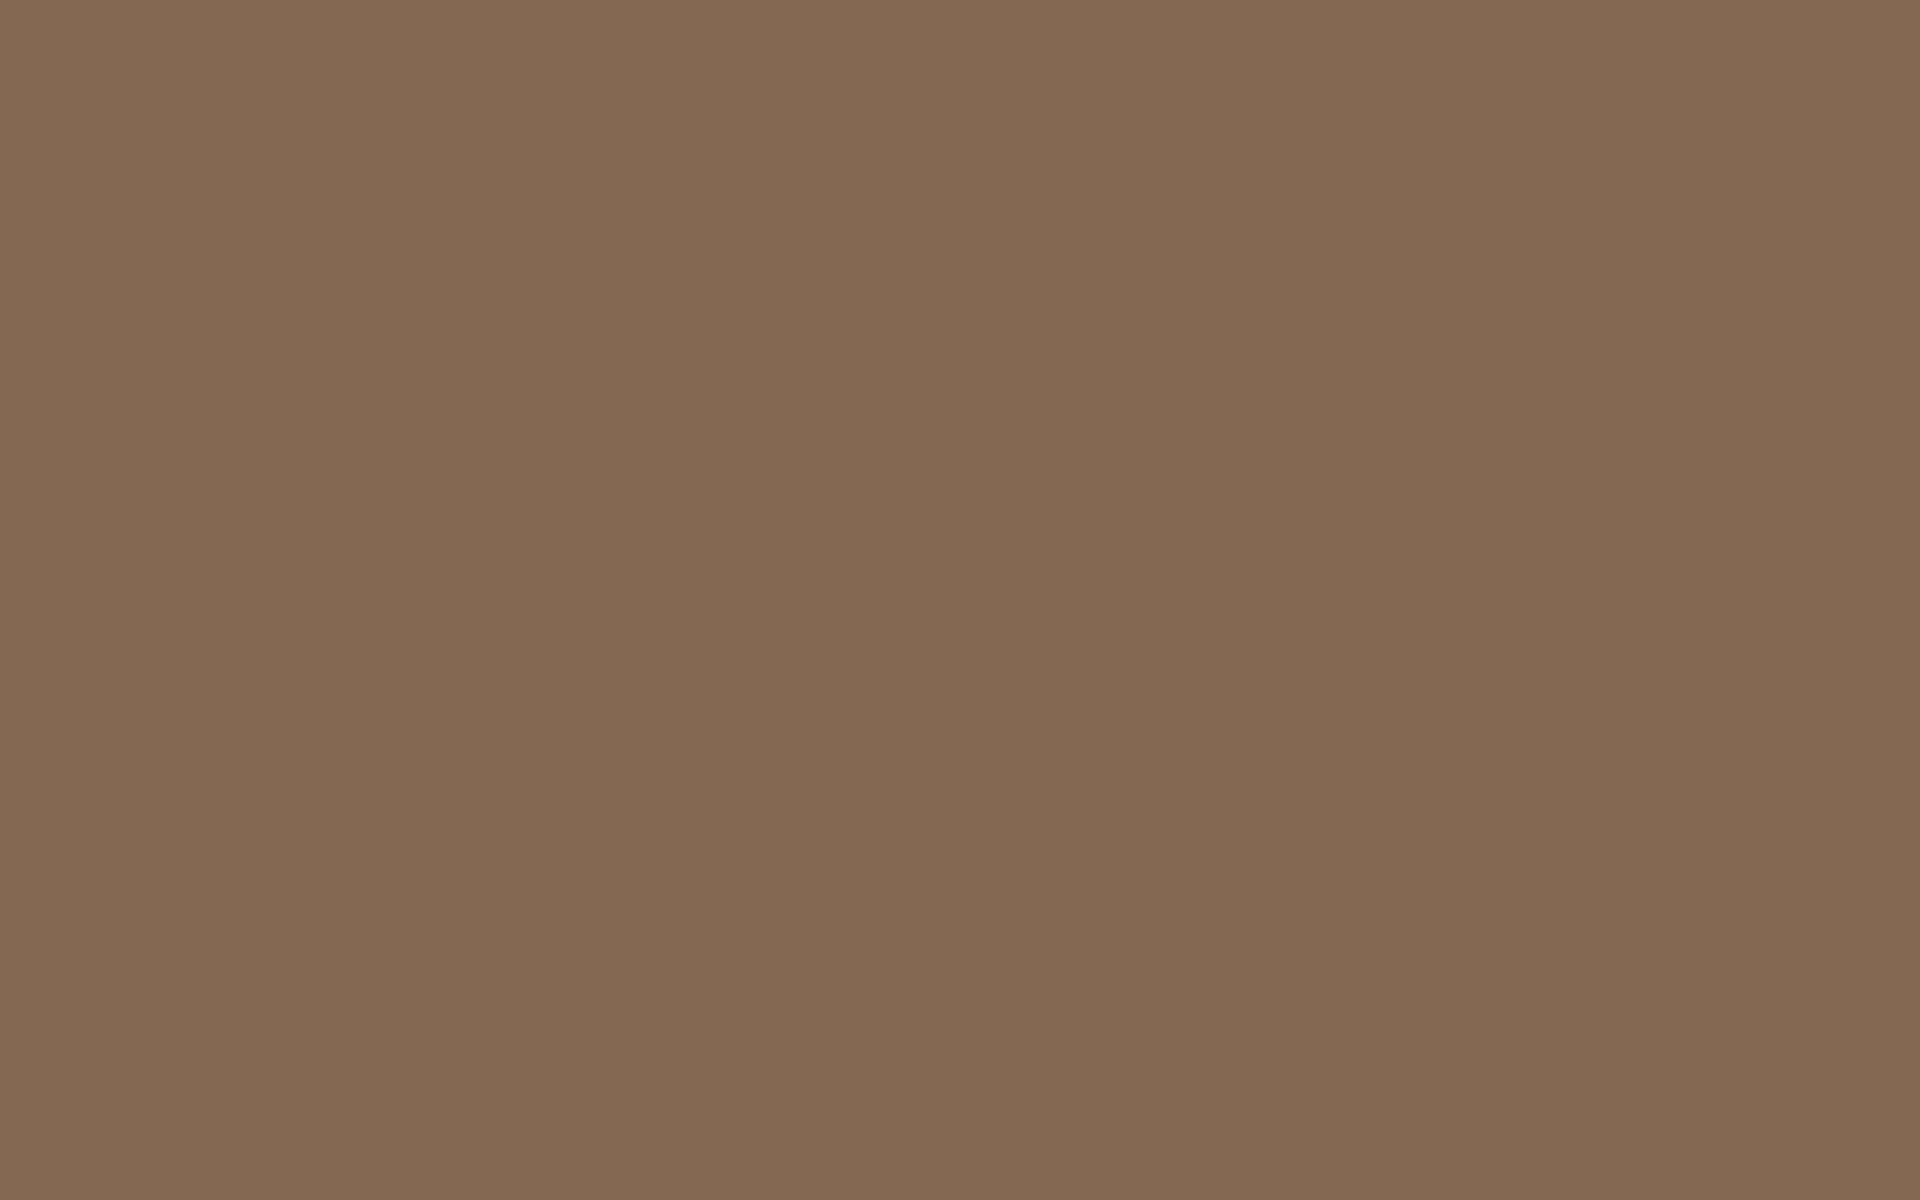 1920x1200 Pastel Brown Solid Color Background